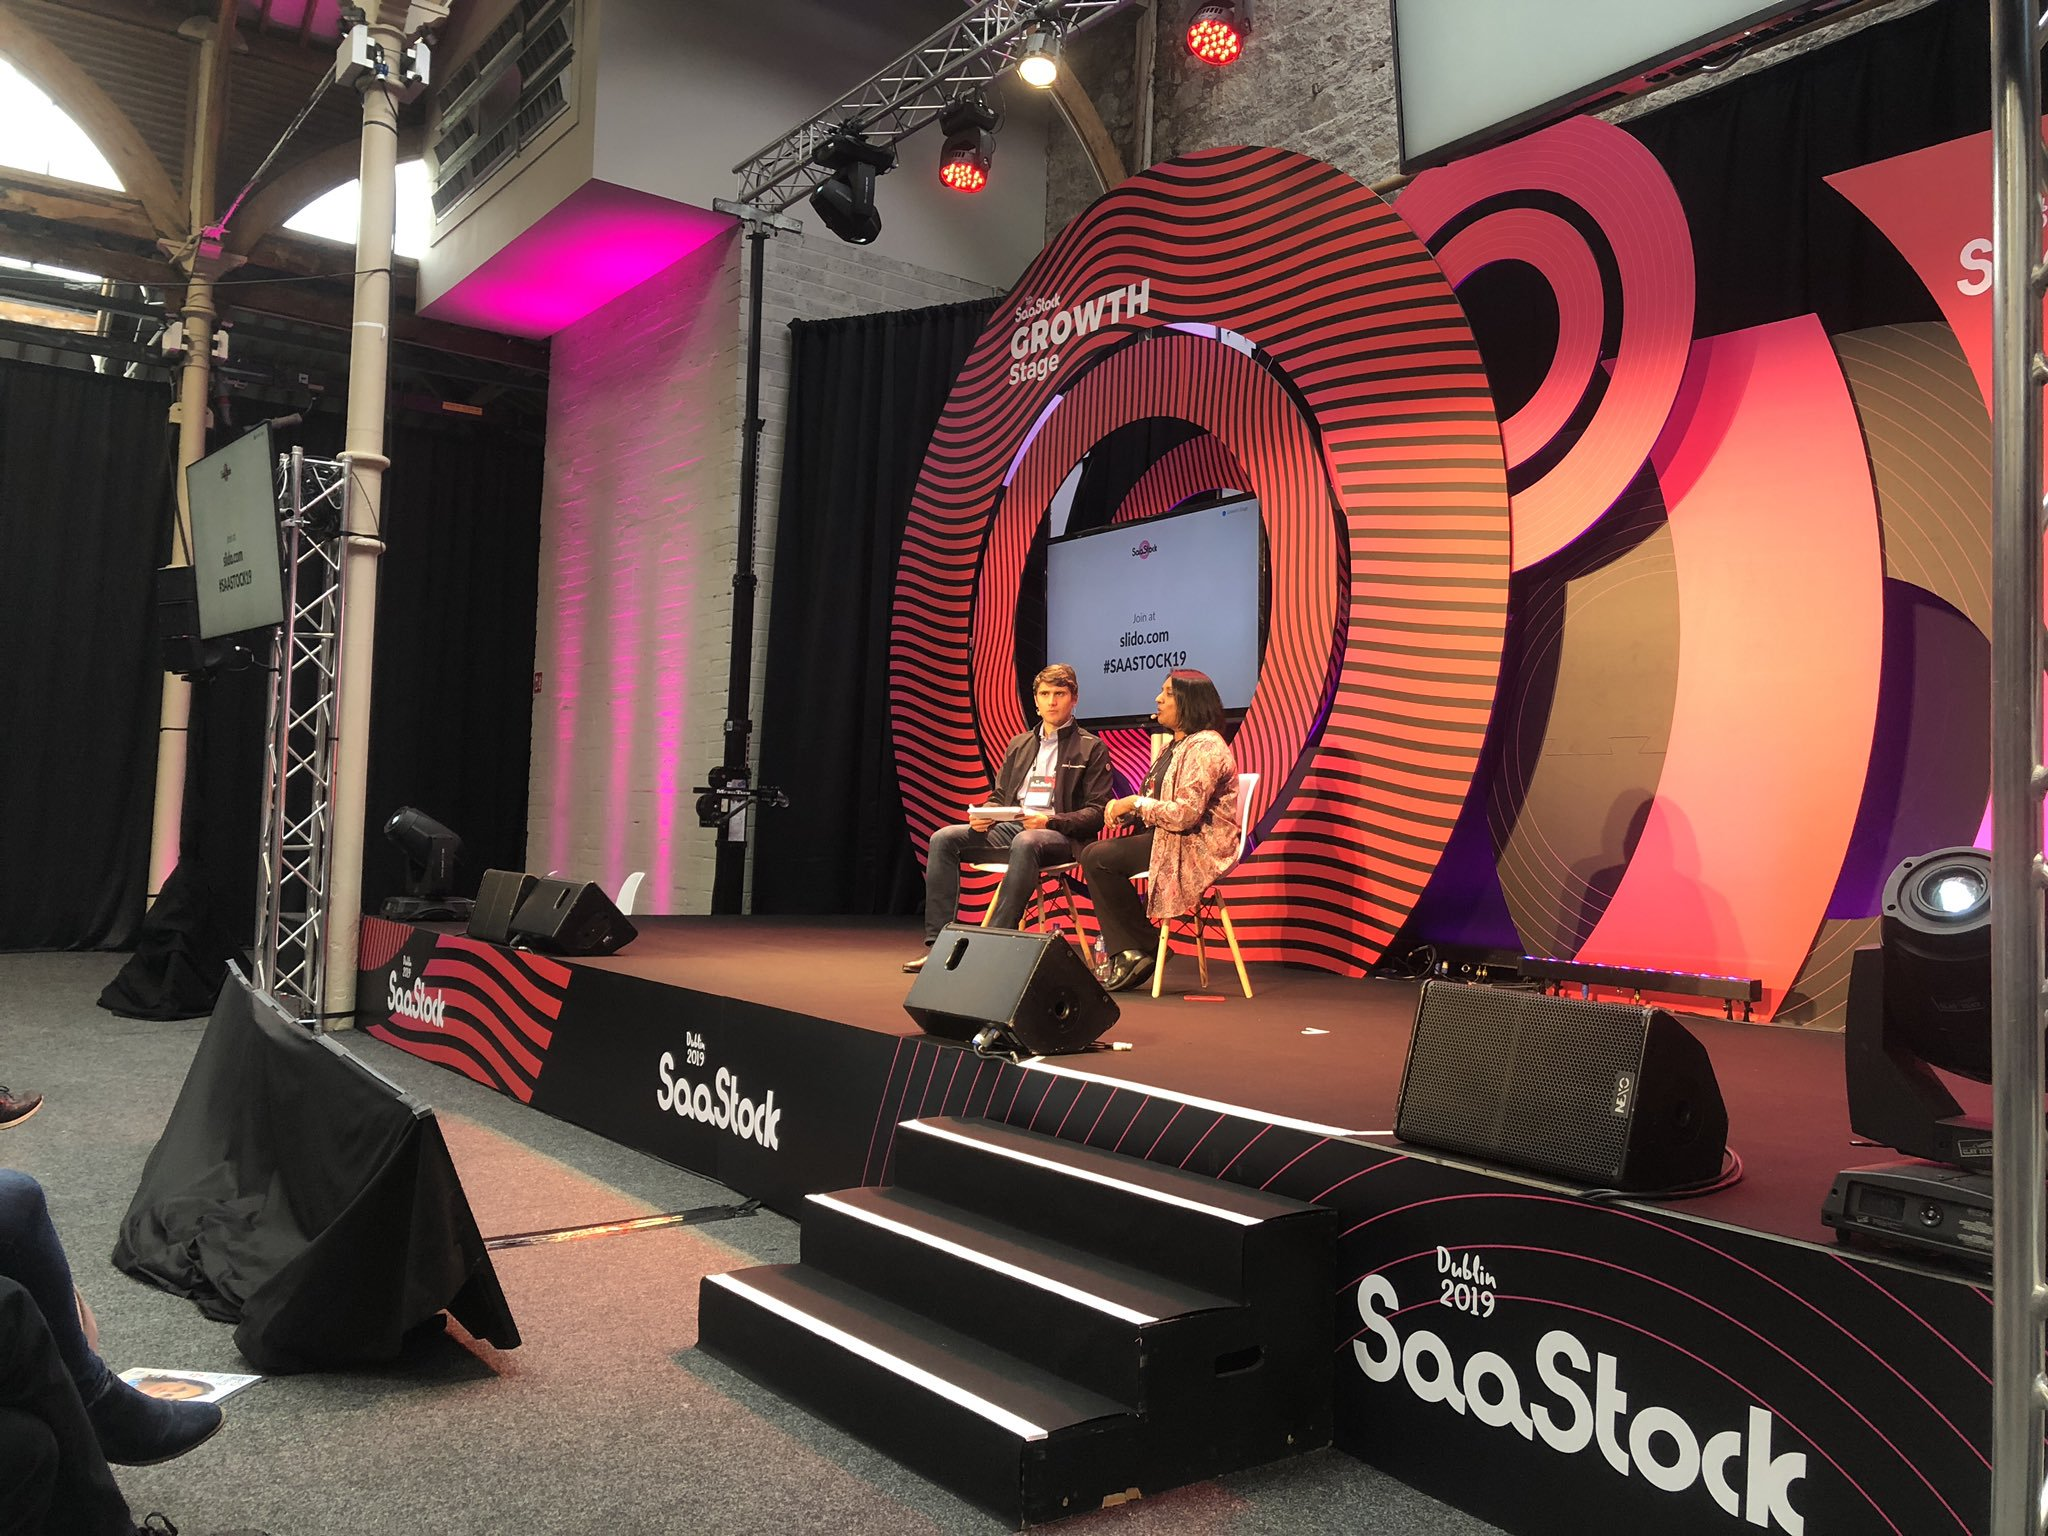 saastock dublin 2019 growth stage